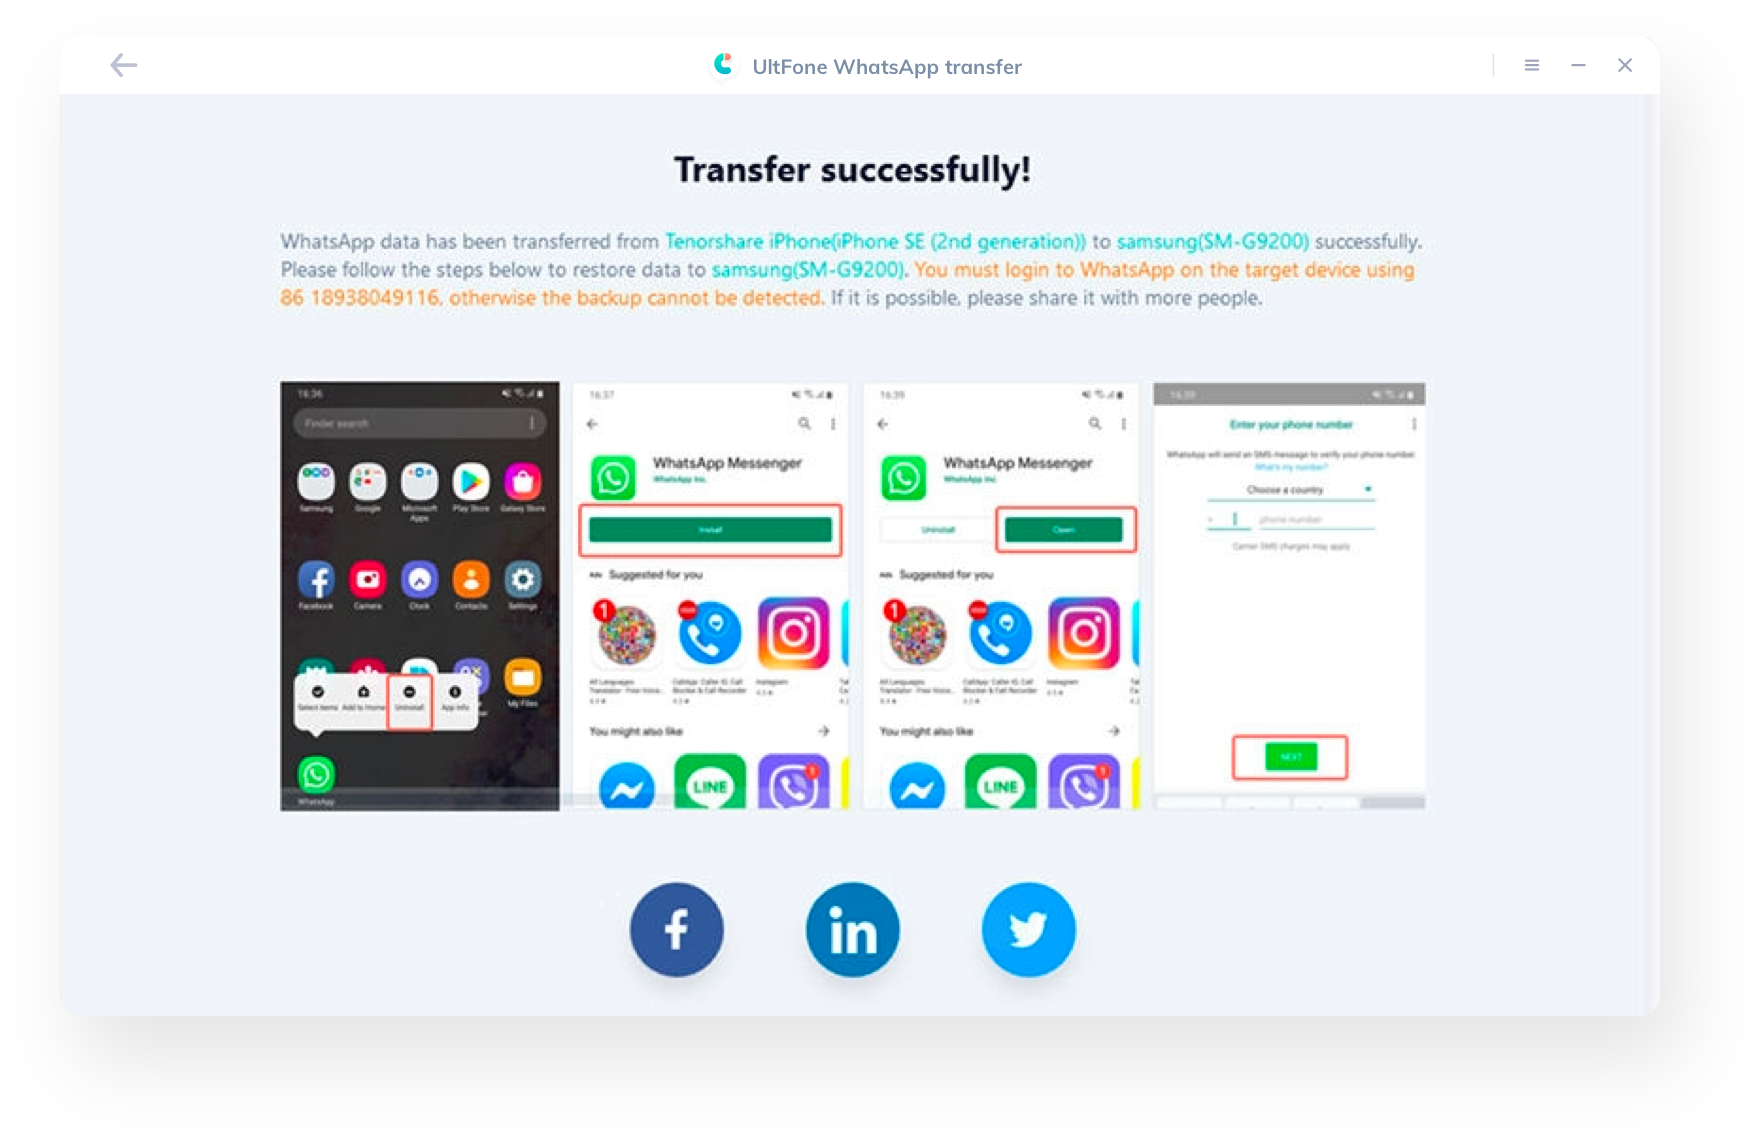 whatsapp transfer from iphone to android successfully